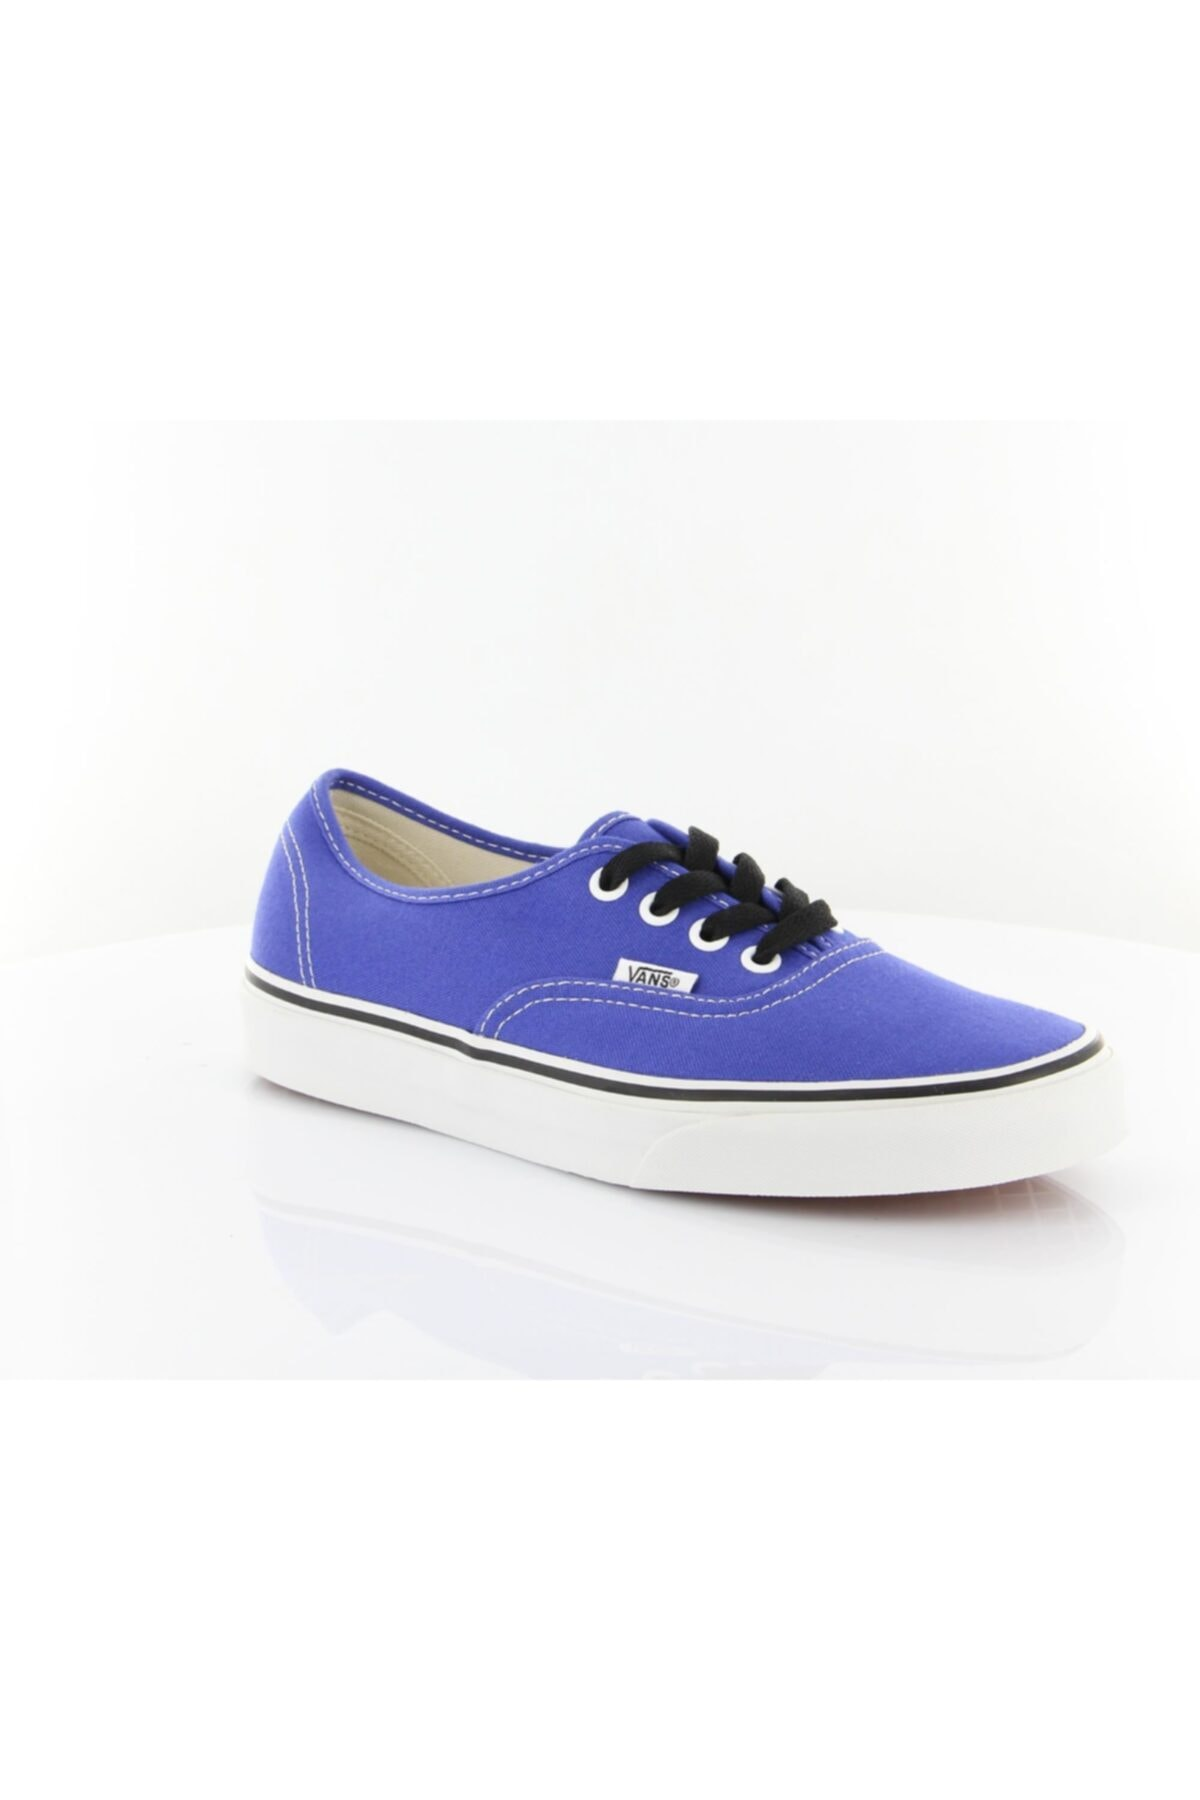 Vans Unisex Sneaker - Vtsv922 Authentic - VTSV922 2